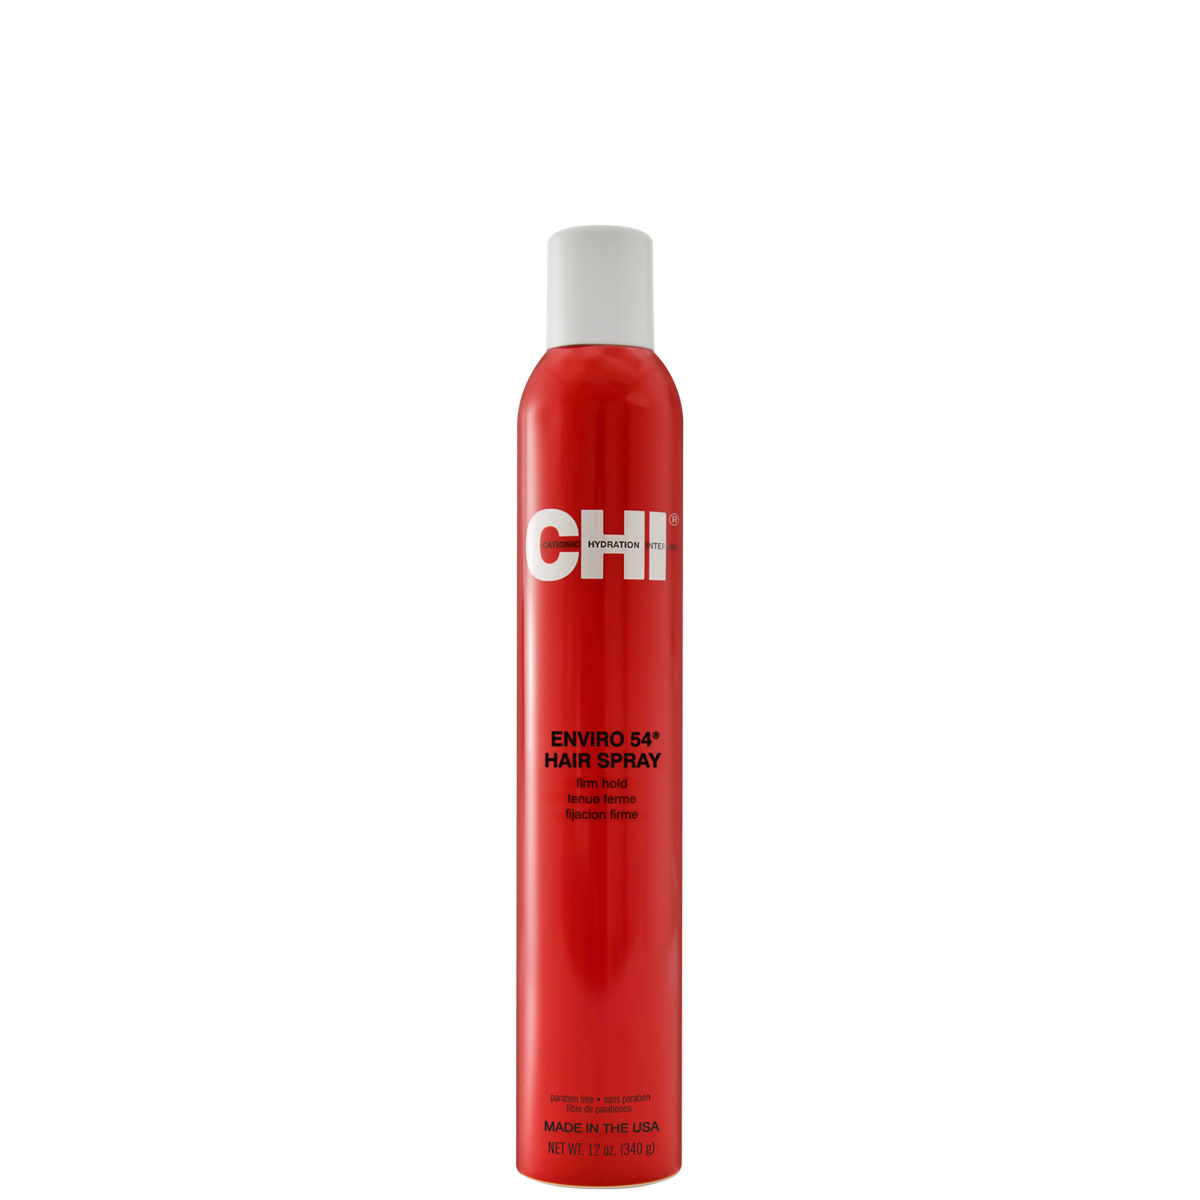 CHI-Styling-CHI-Enviro54HairSpray-Firm